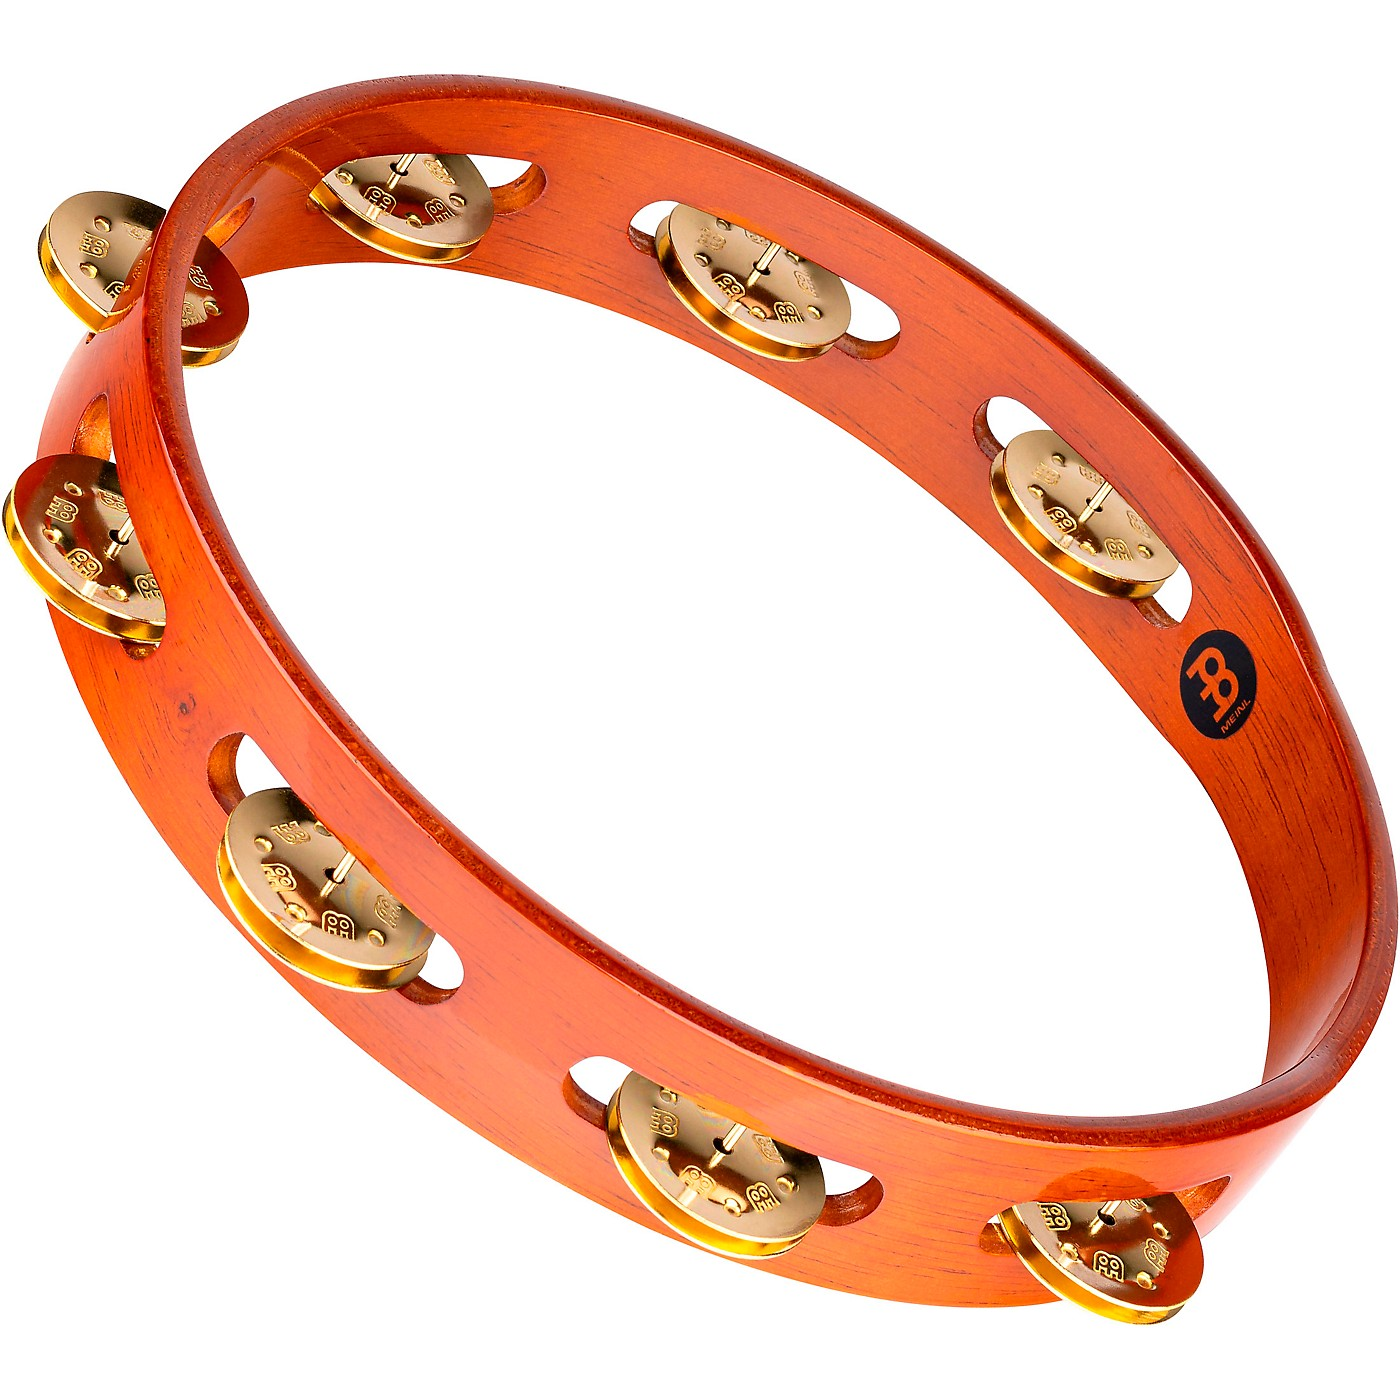 Meinl Wood Tambourine One Row thumbnail